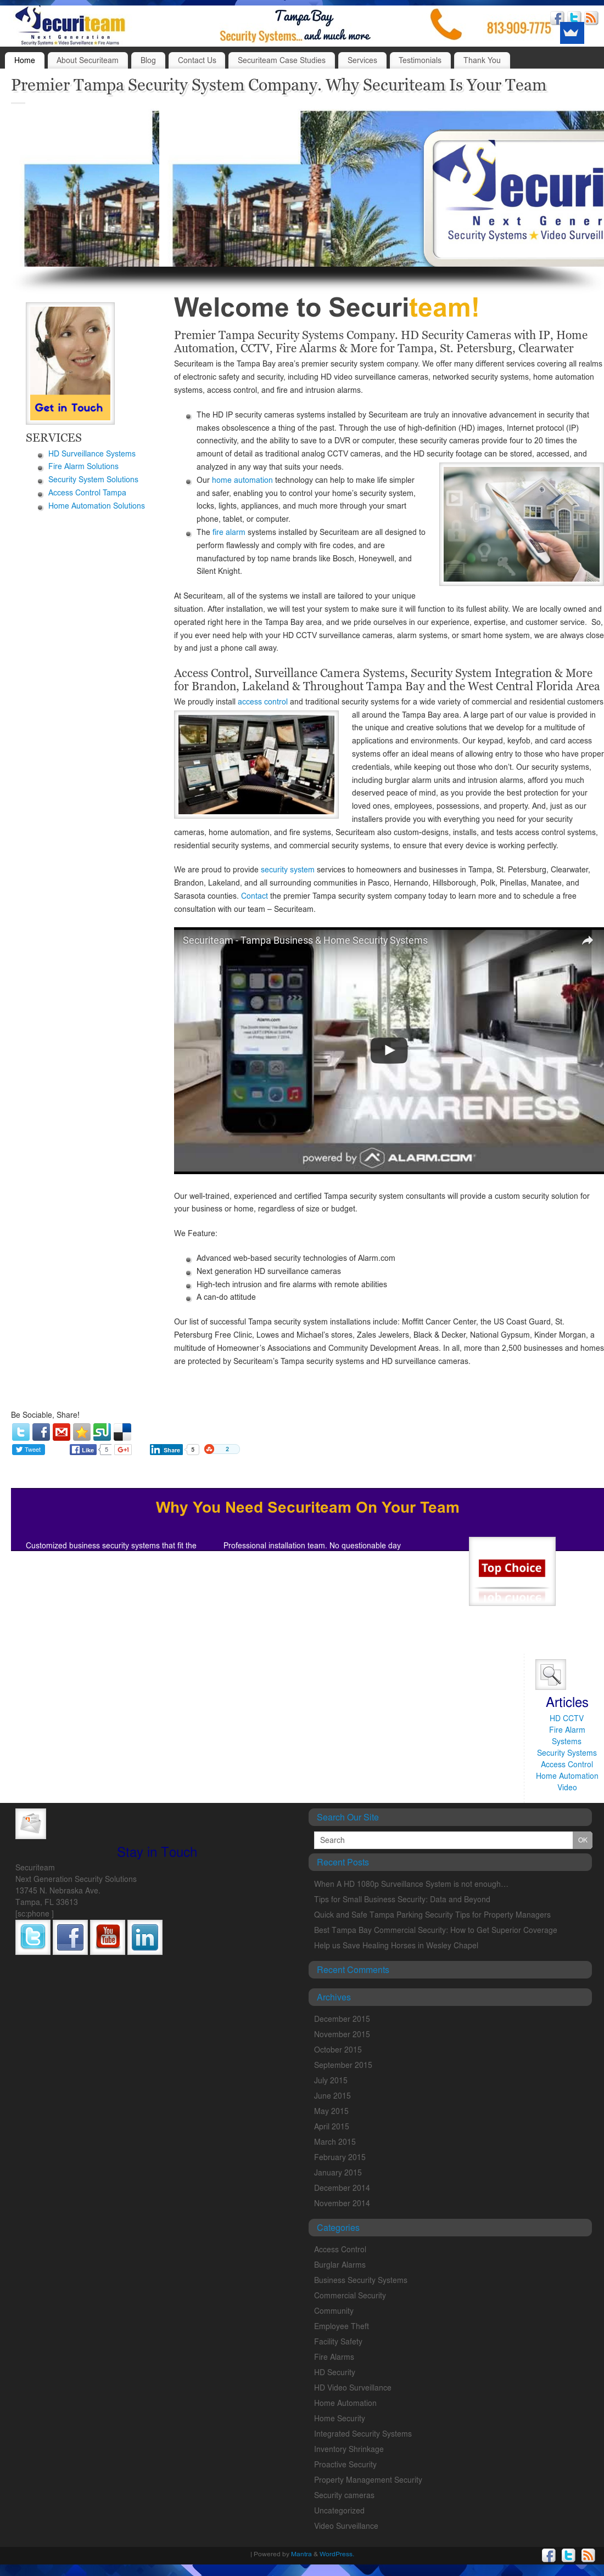 Enchanting Web Based Home Security Composition - Home Decorating ...